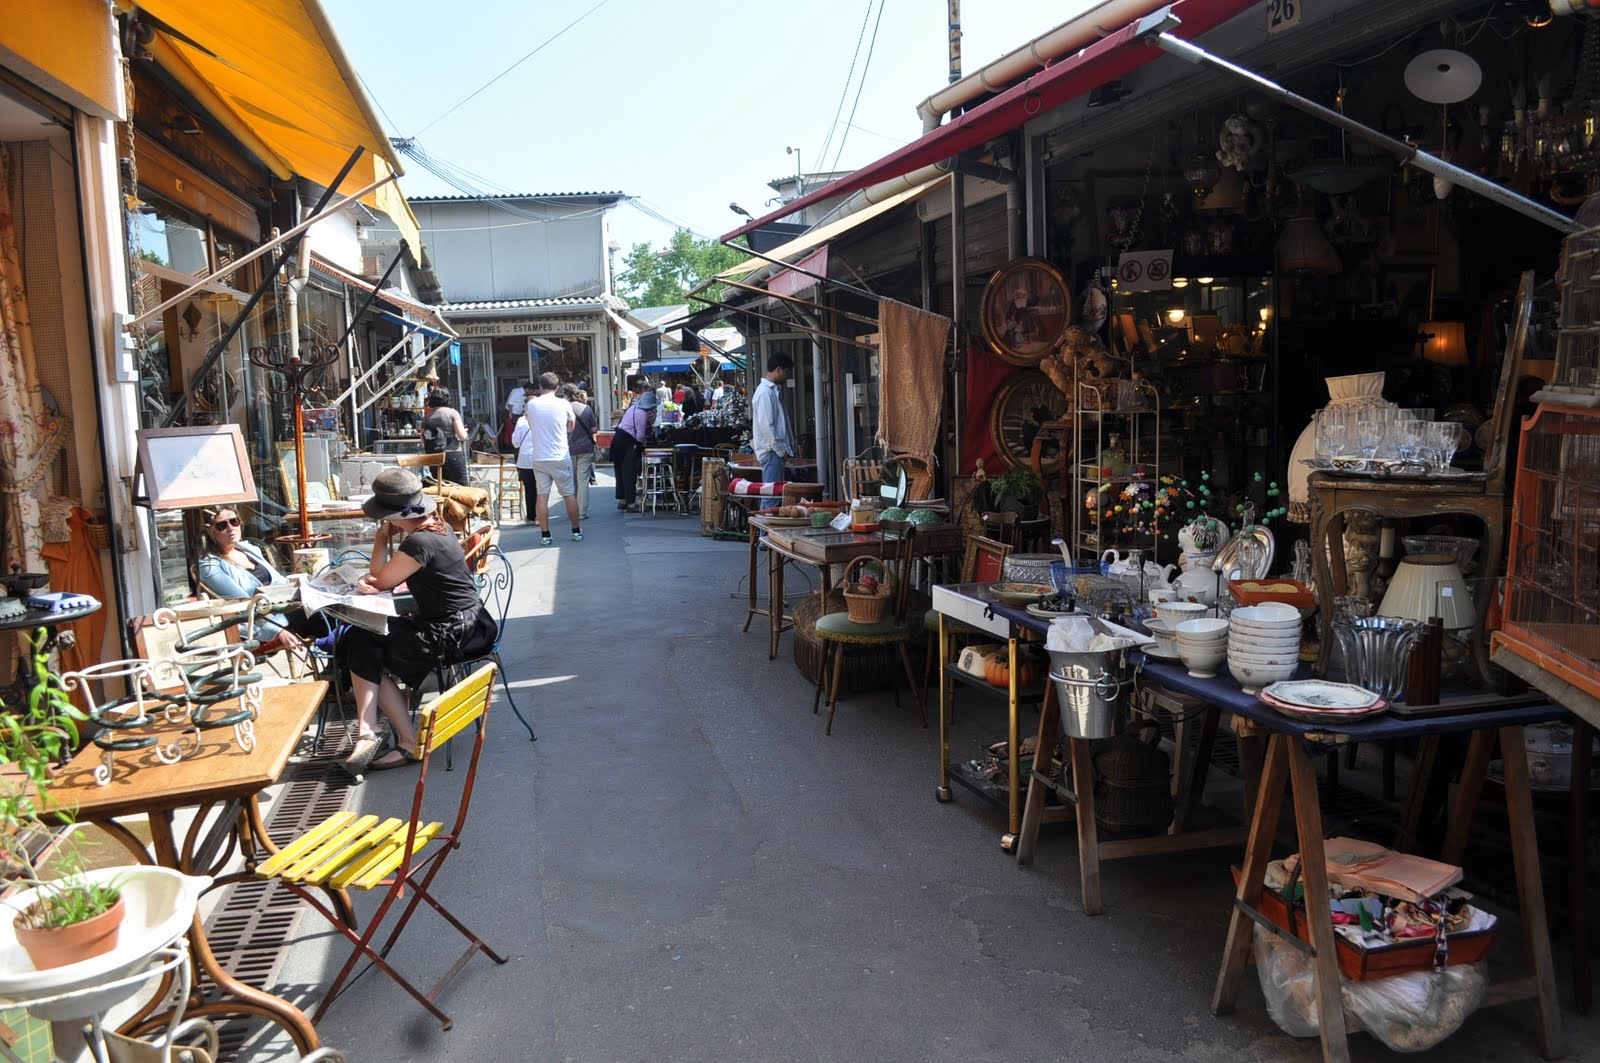 Where else to do in paris for repeat visitor porte de clignancourt antique flea market les - Puces porte de clignancourt ...